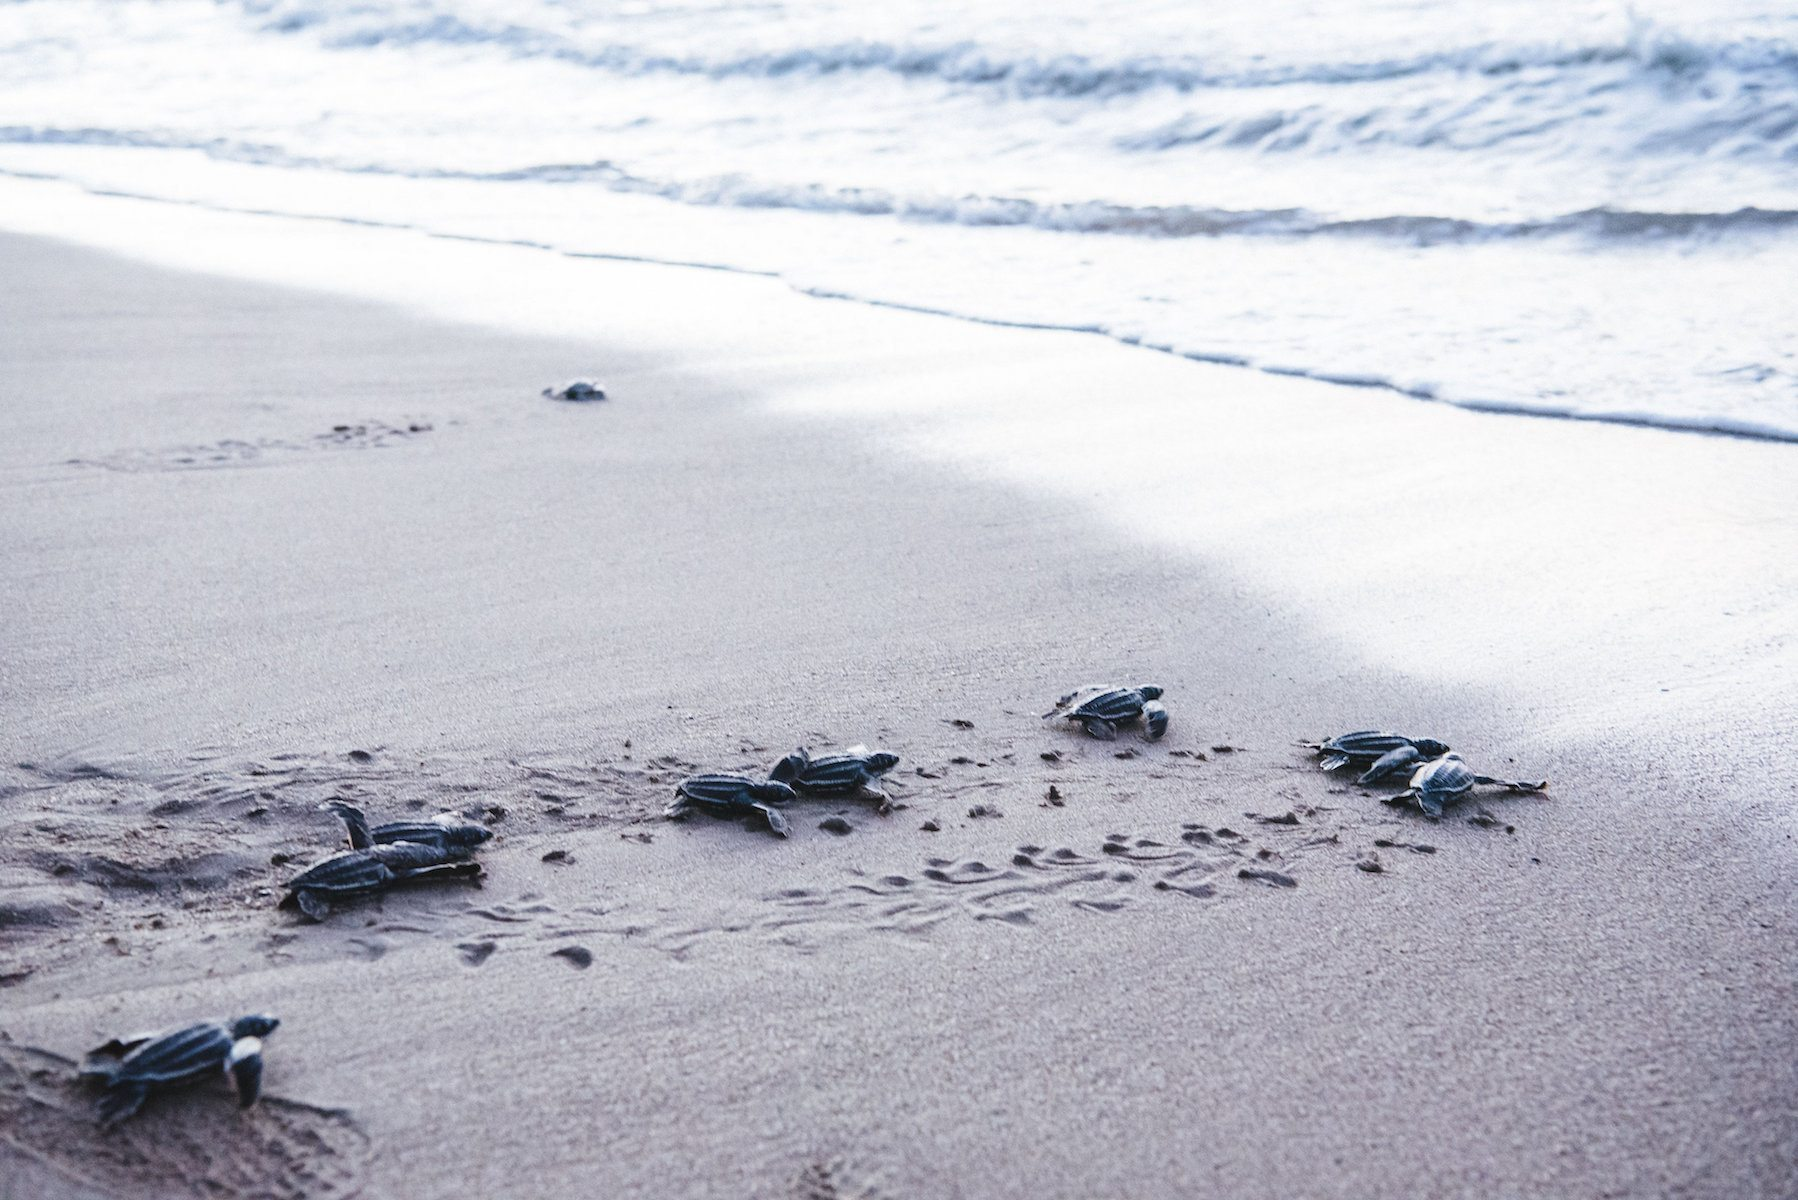 Baby turtles hatching and race to the ocean for the first time at Grande Riviere Bay